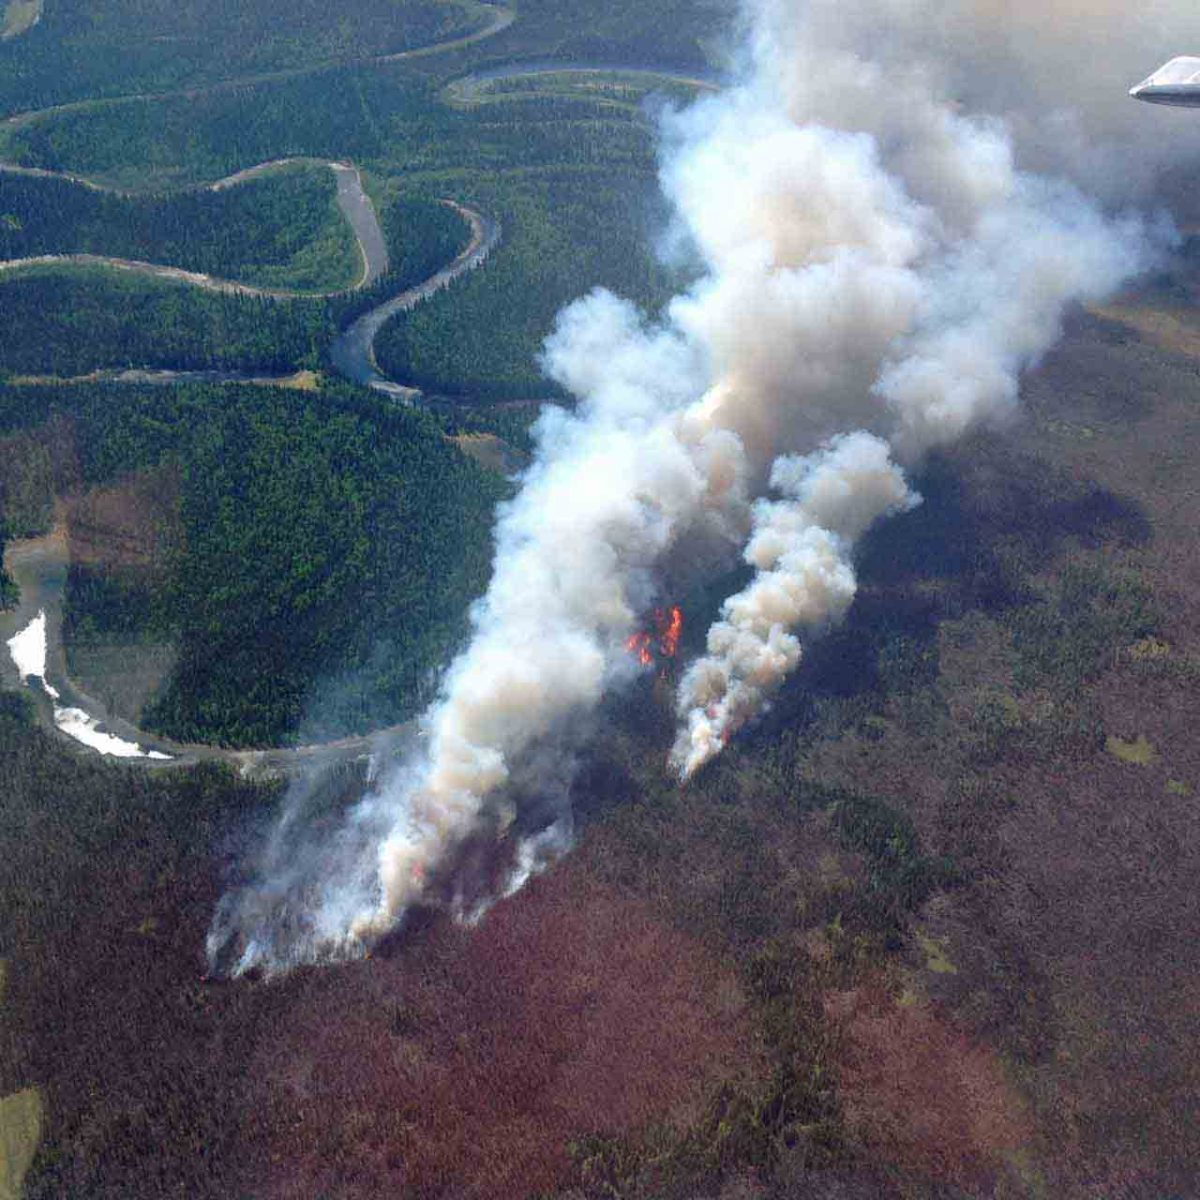 Medfra Fire survives Alaska winter, burns thousands of acres